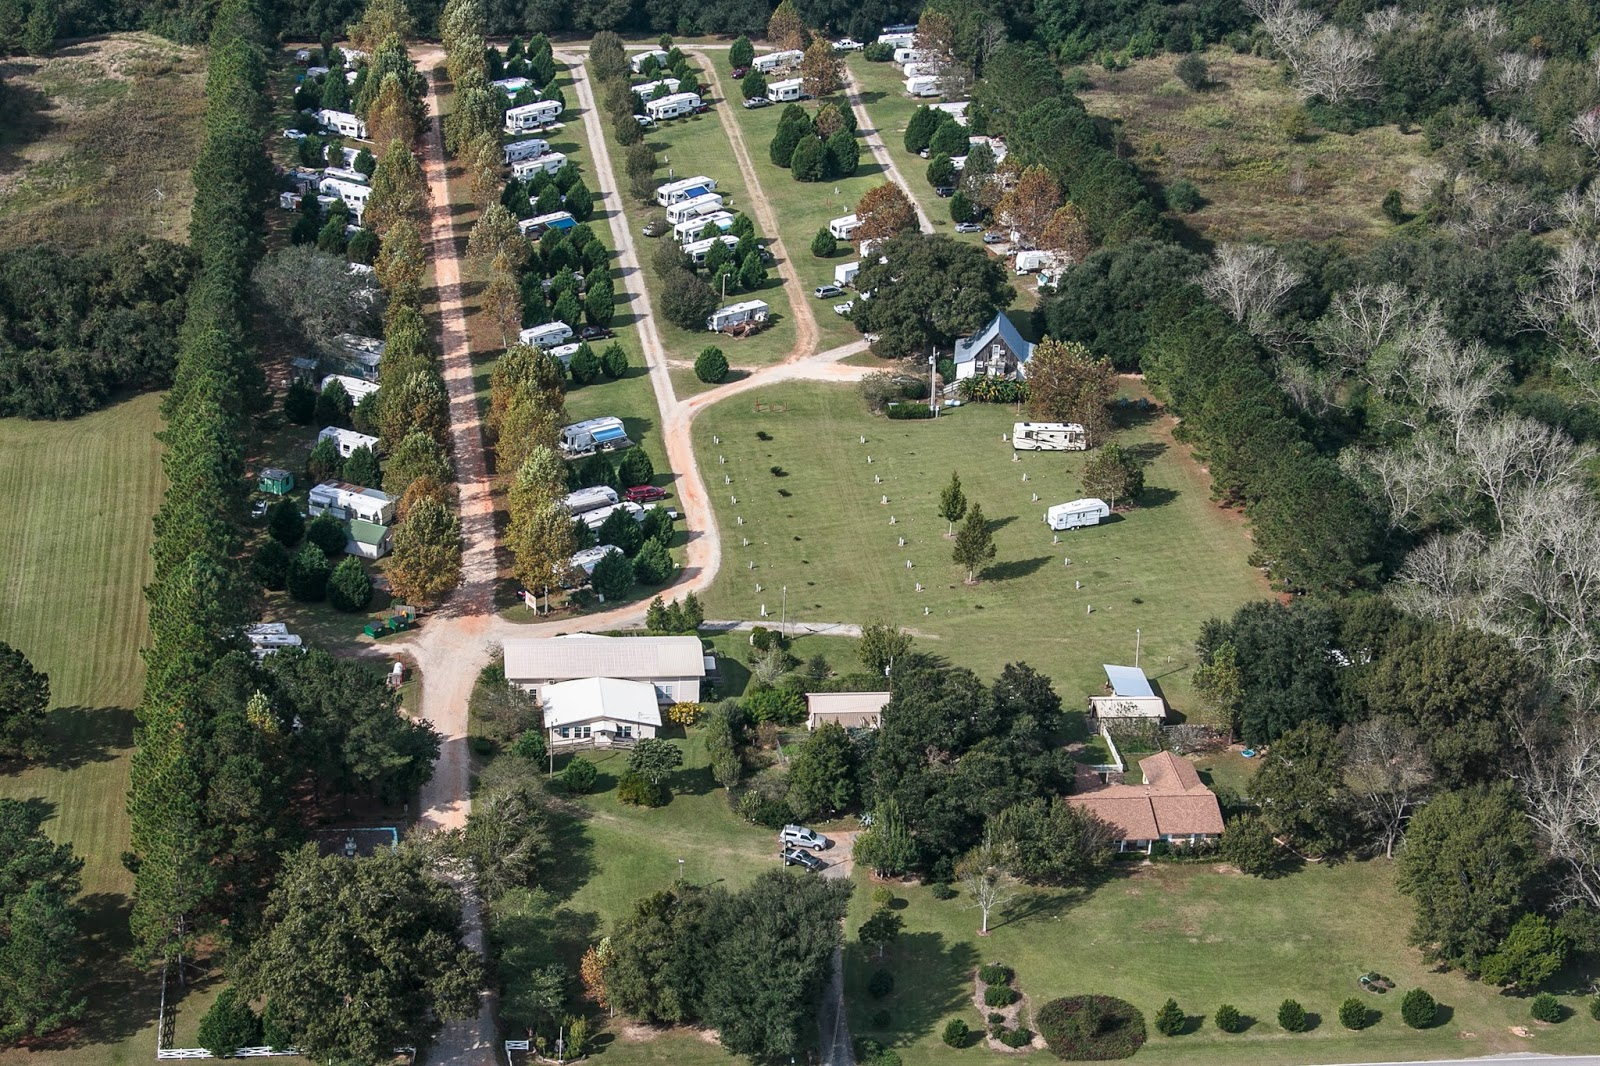 South Wind RV Park: Aerial view of the park